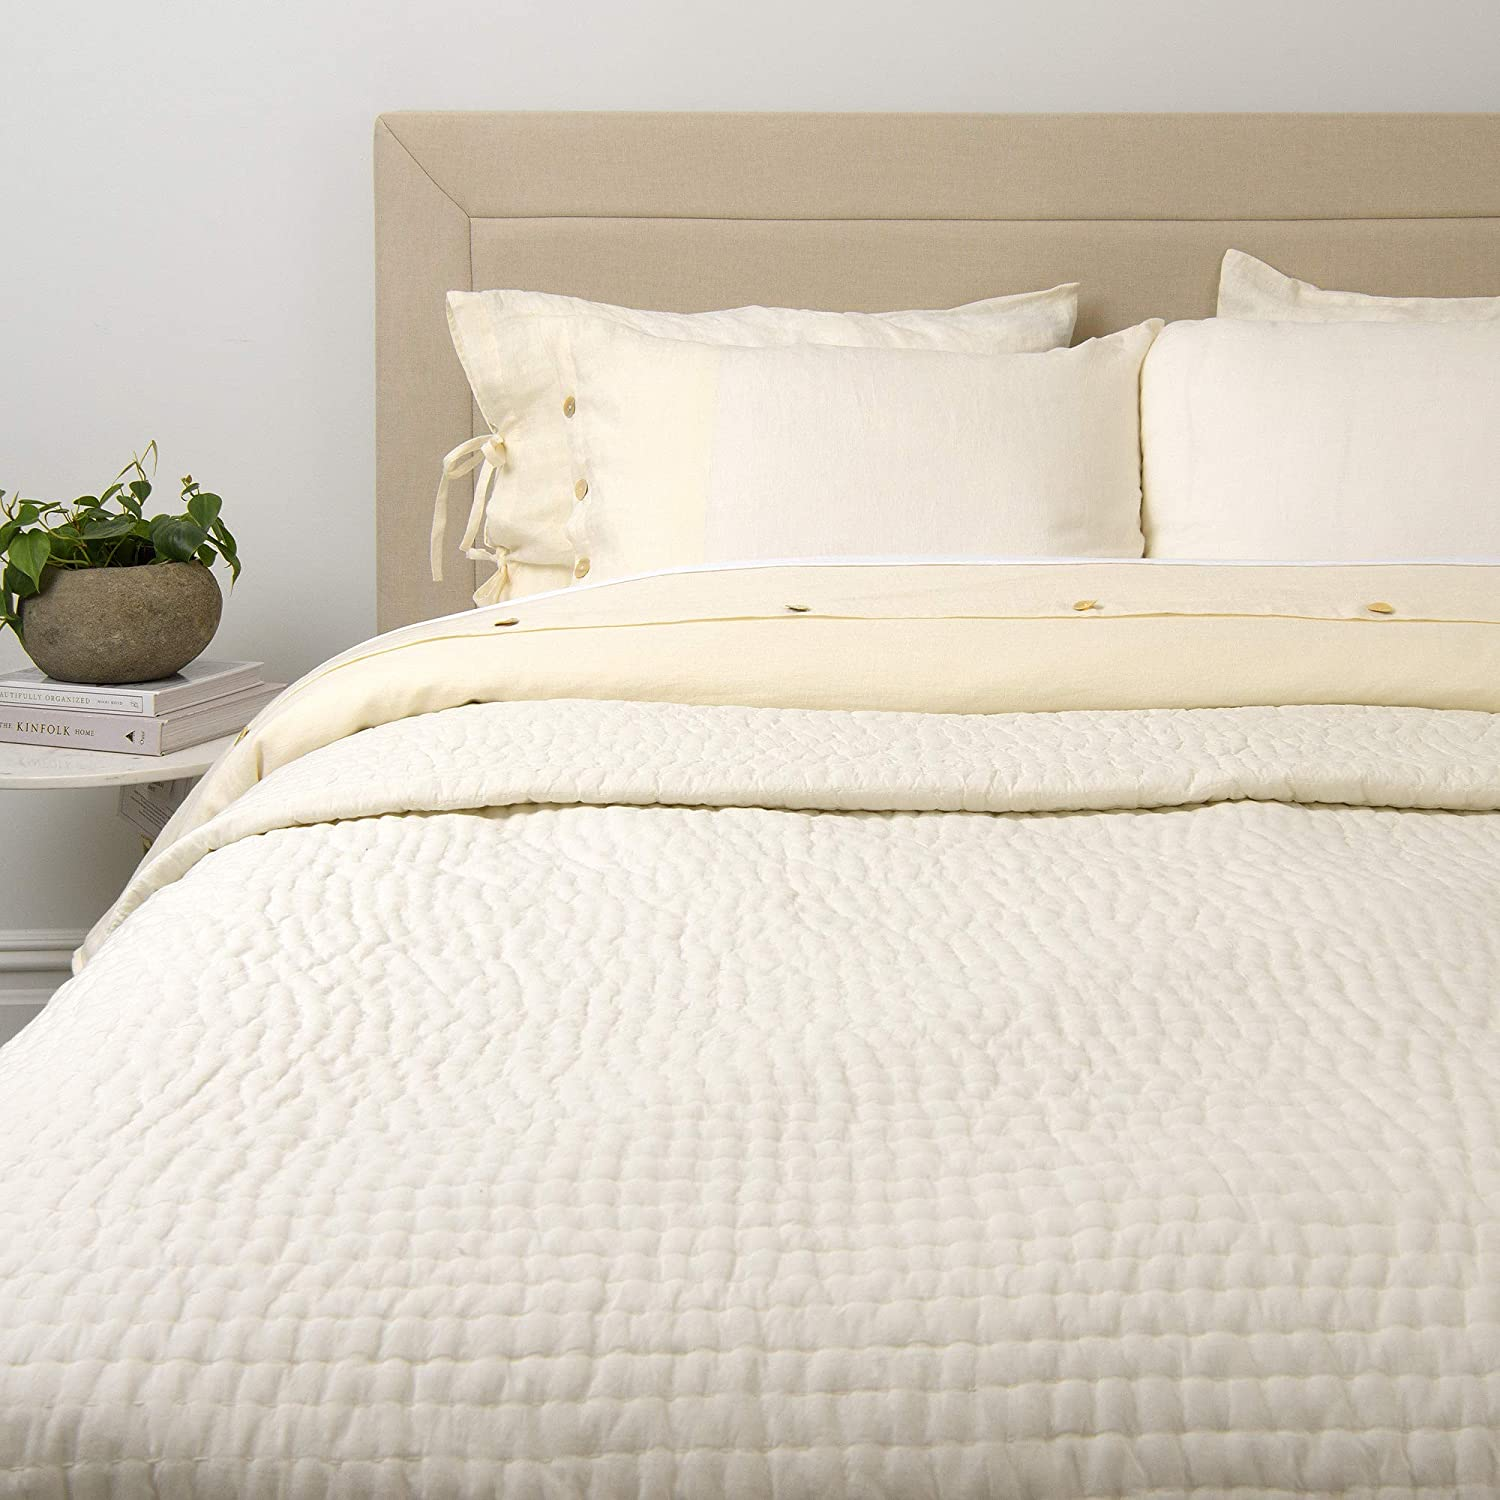 "Best Home Fashion Cotton Tufted Quilt- Casual Elegance, Lightweight and Stylish Bedding, Blanket-QUEEN-IVORY-88"" L x 92"" W"